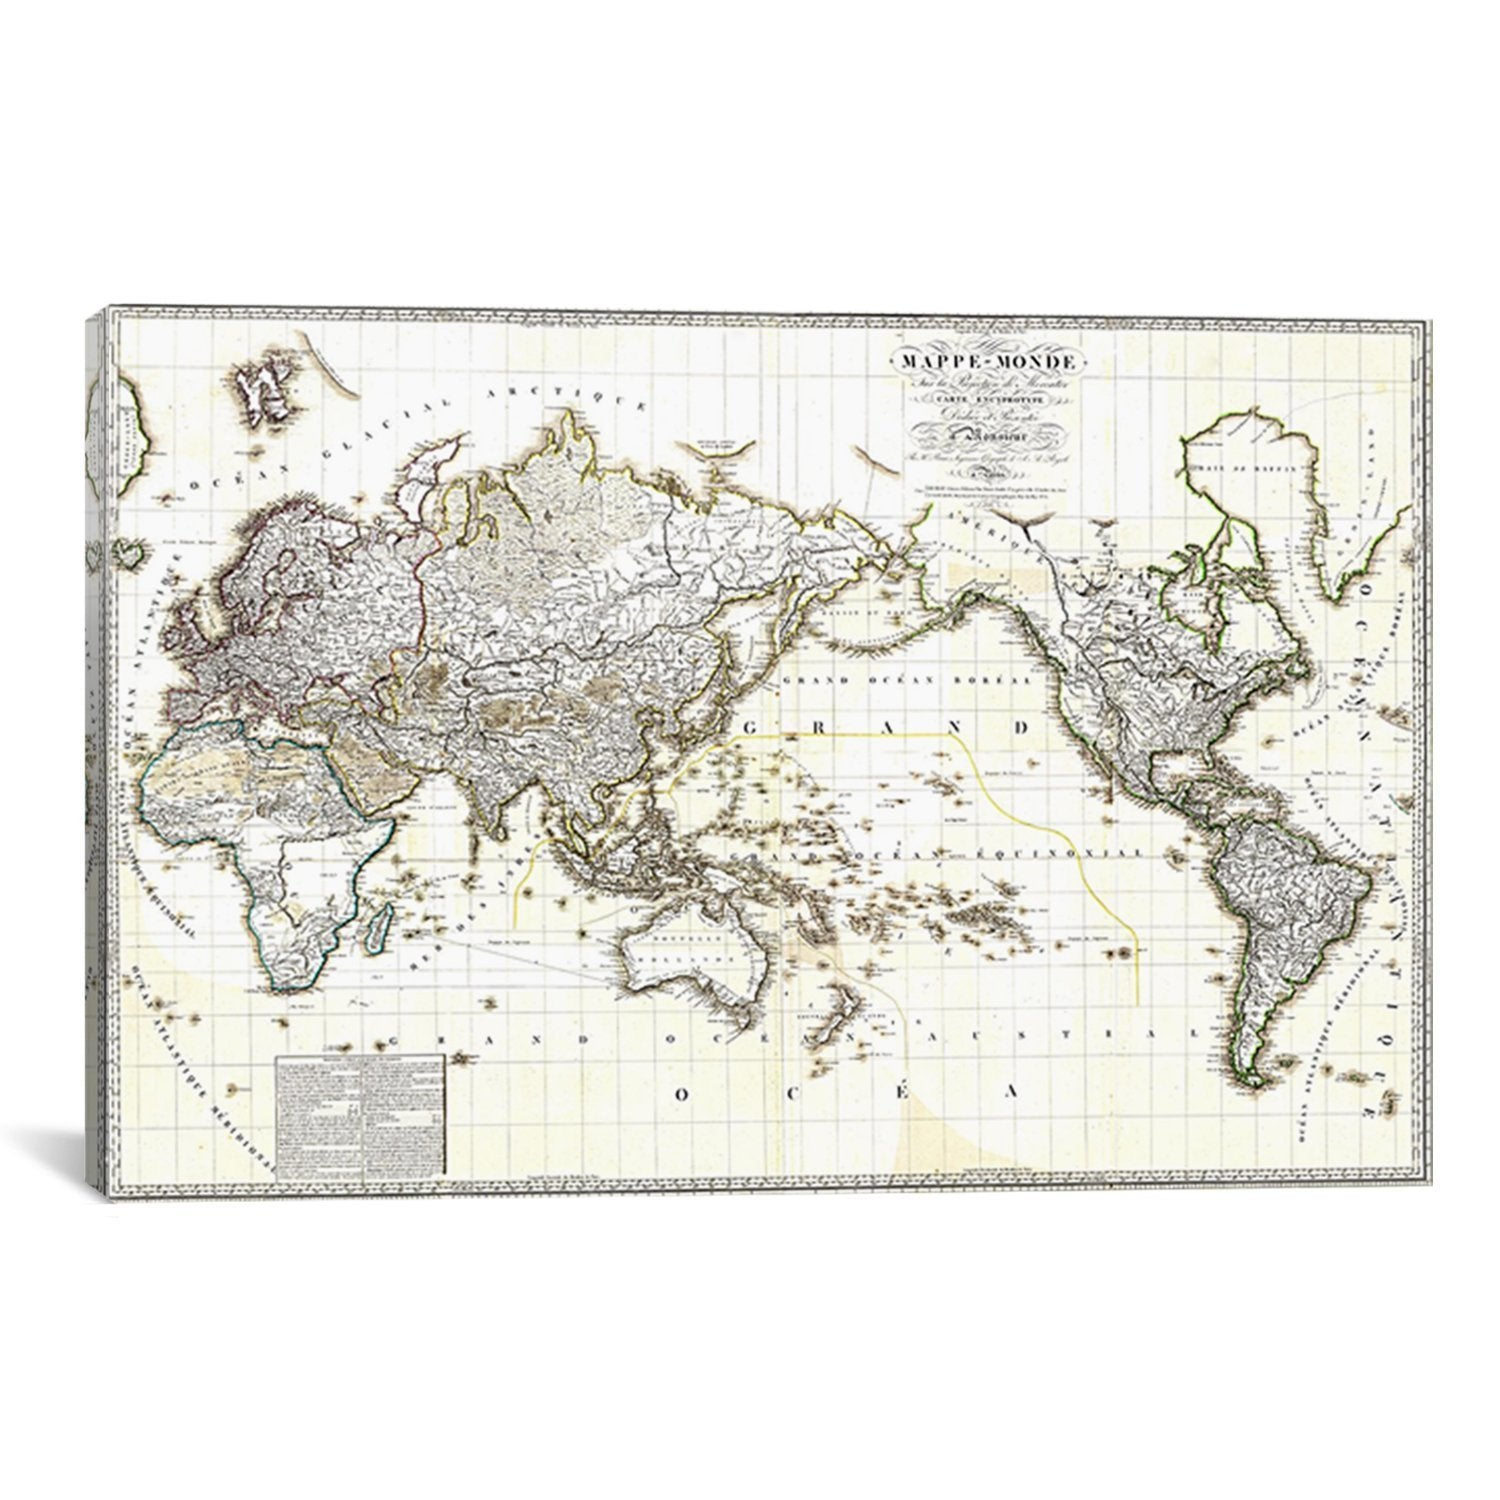 "Antique French Map of The World Canvas Art Print (18"" x 12"" x 1.5"")"